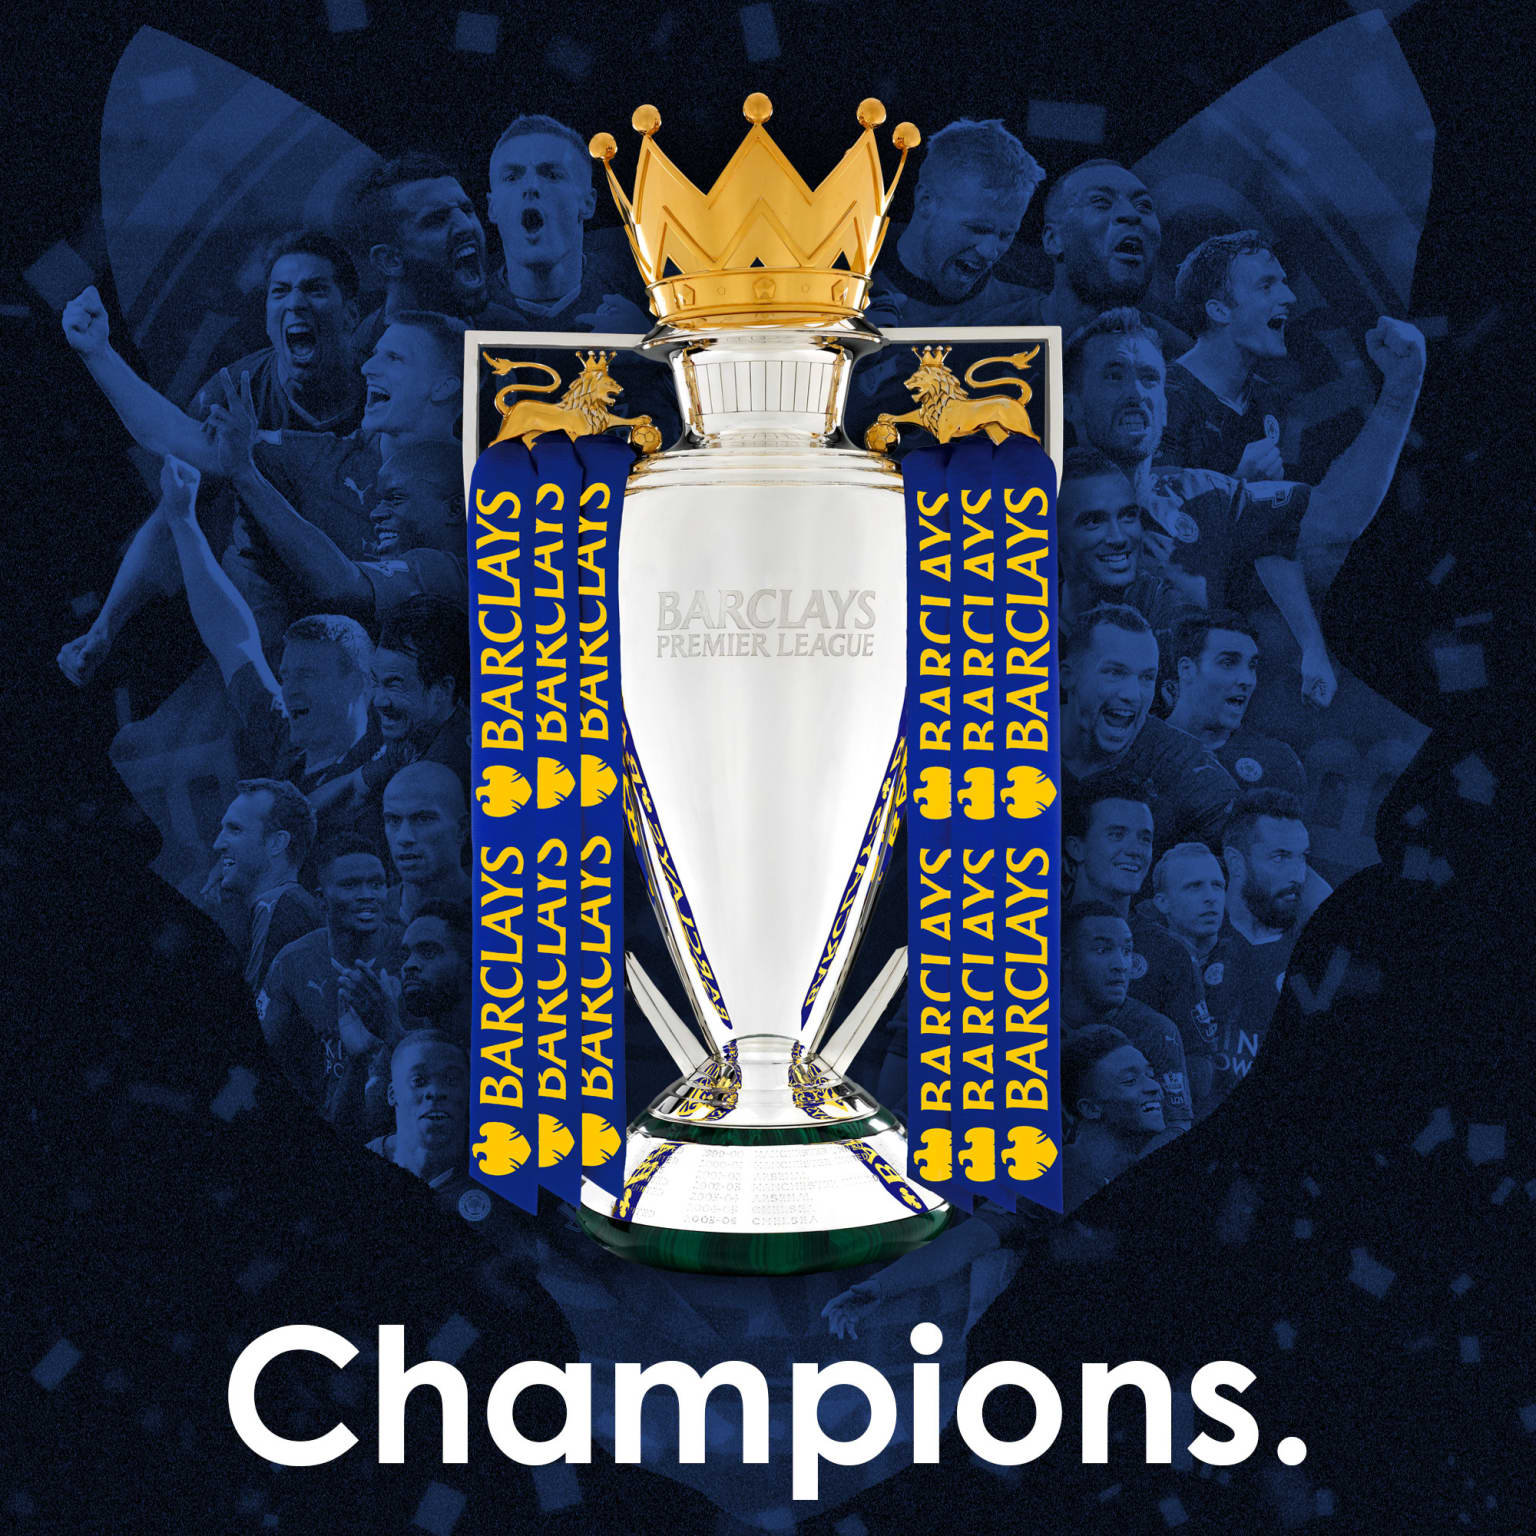 Leicester City - Champions graphic